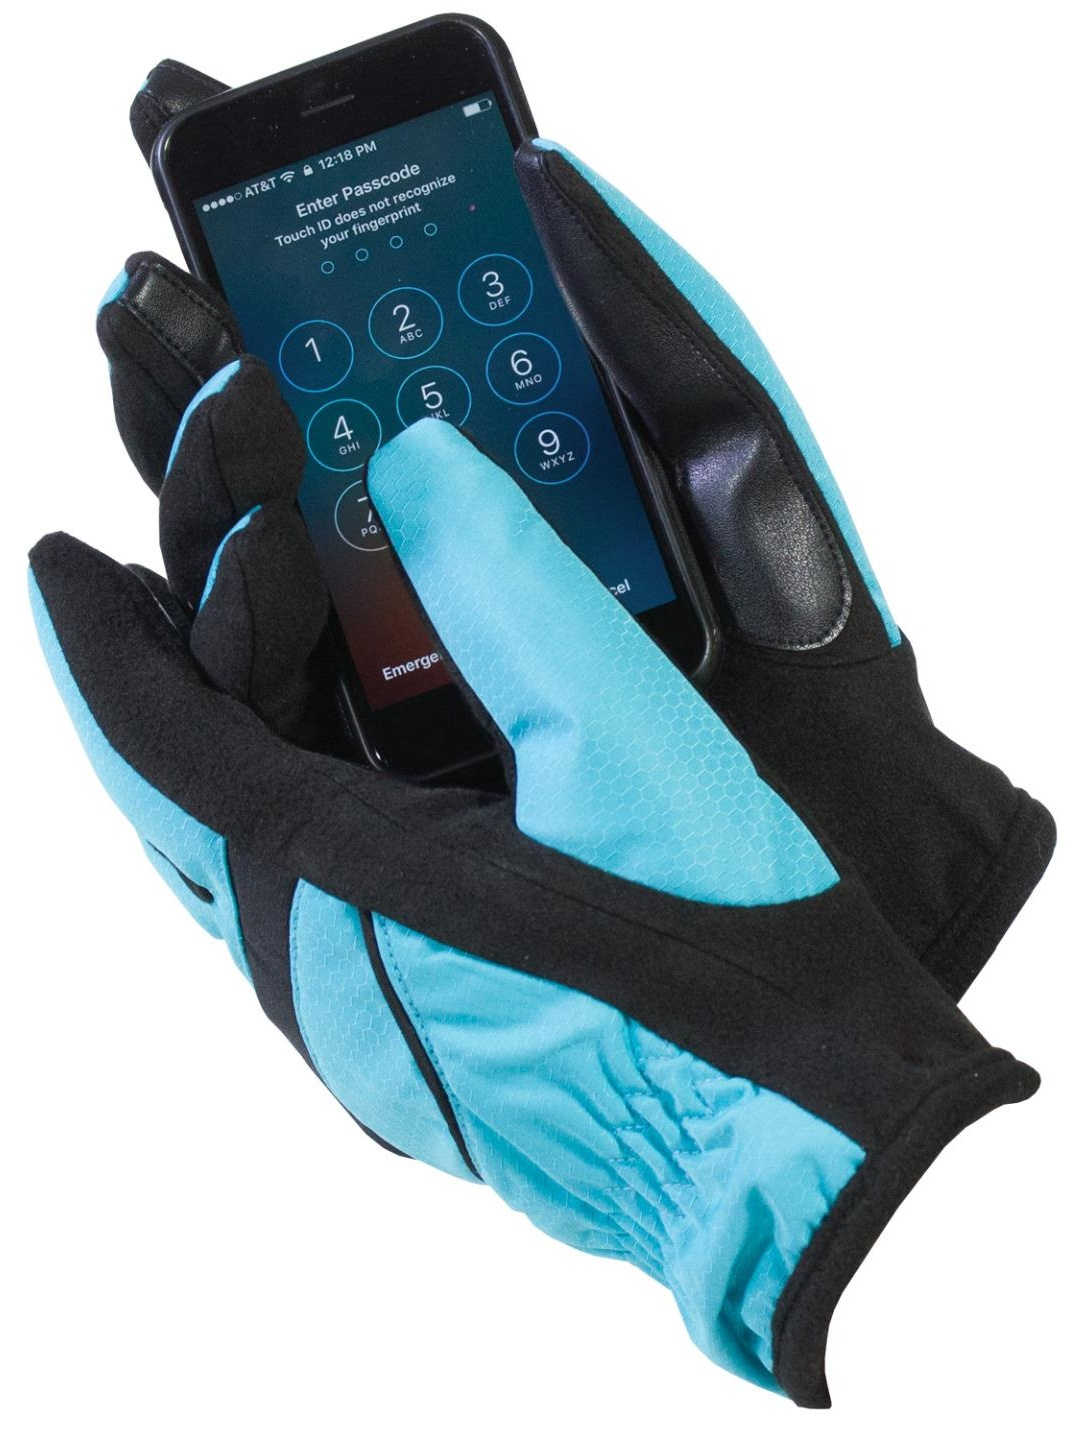 Isotoner Women's Touch Screen Thermaflex Gloves Black & Aqua Large / X-Large